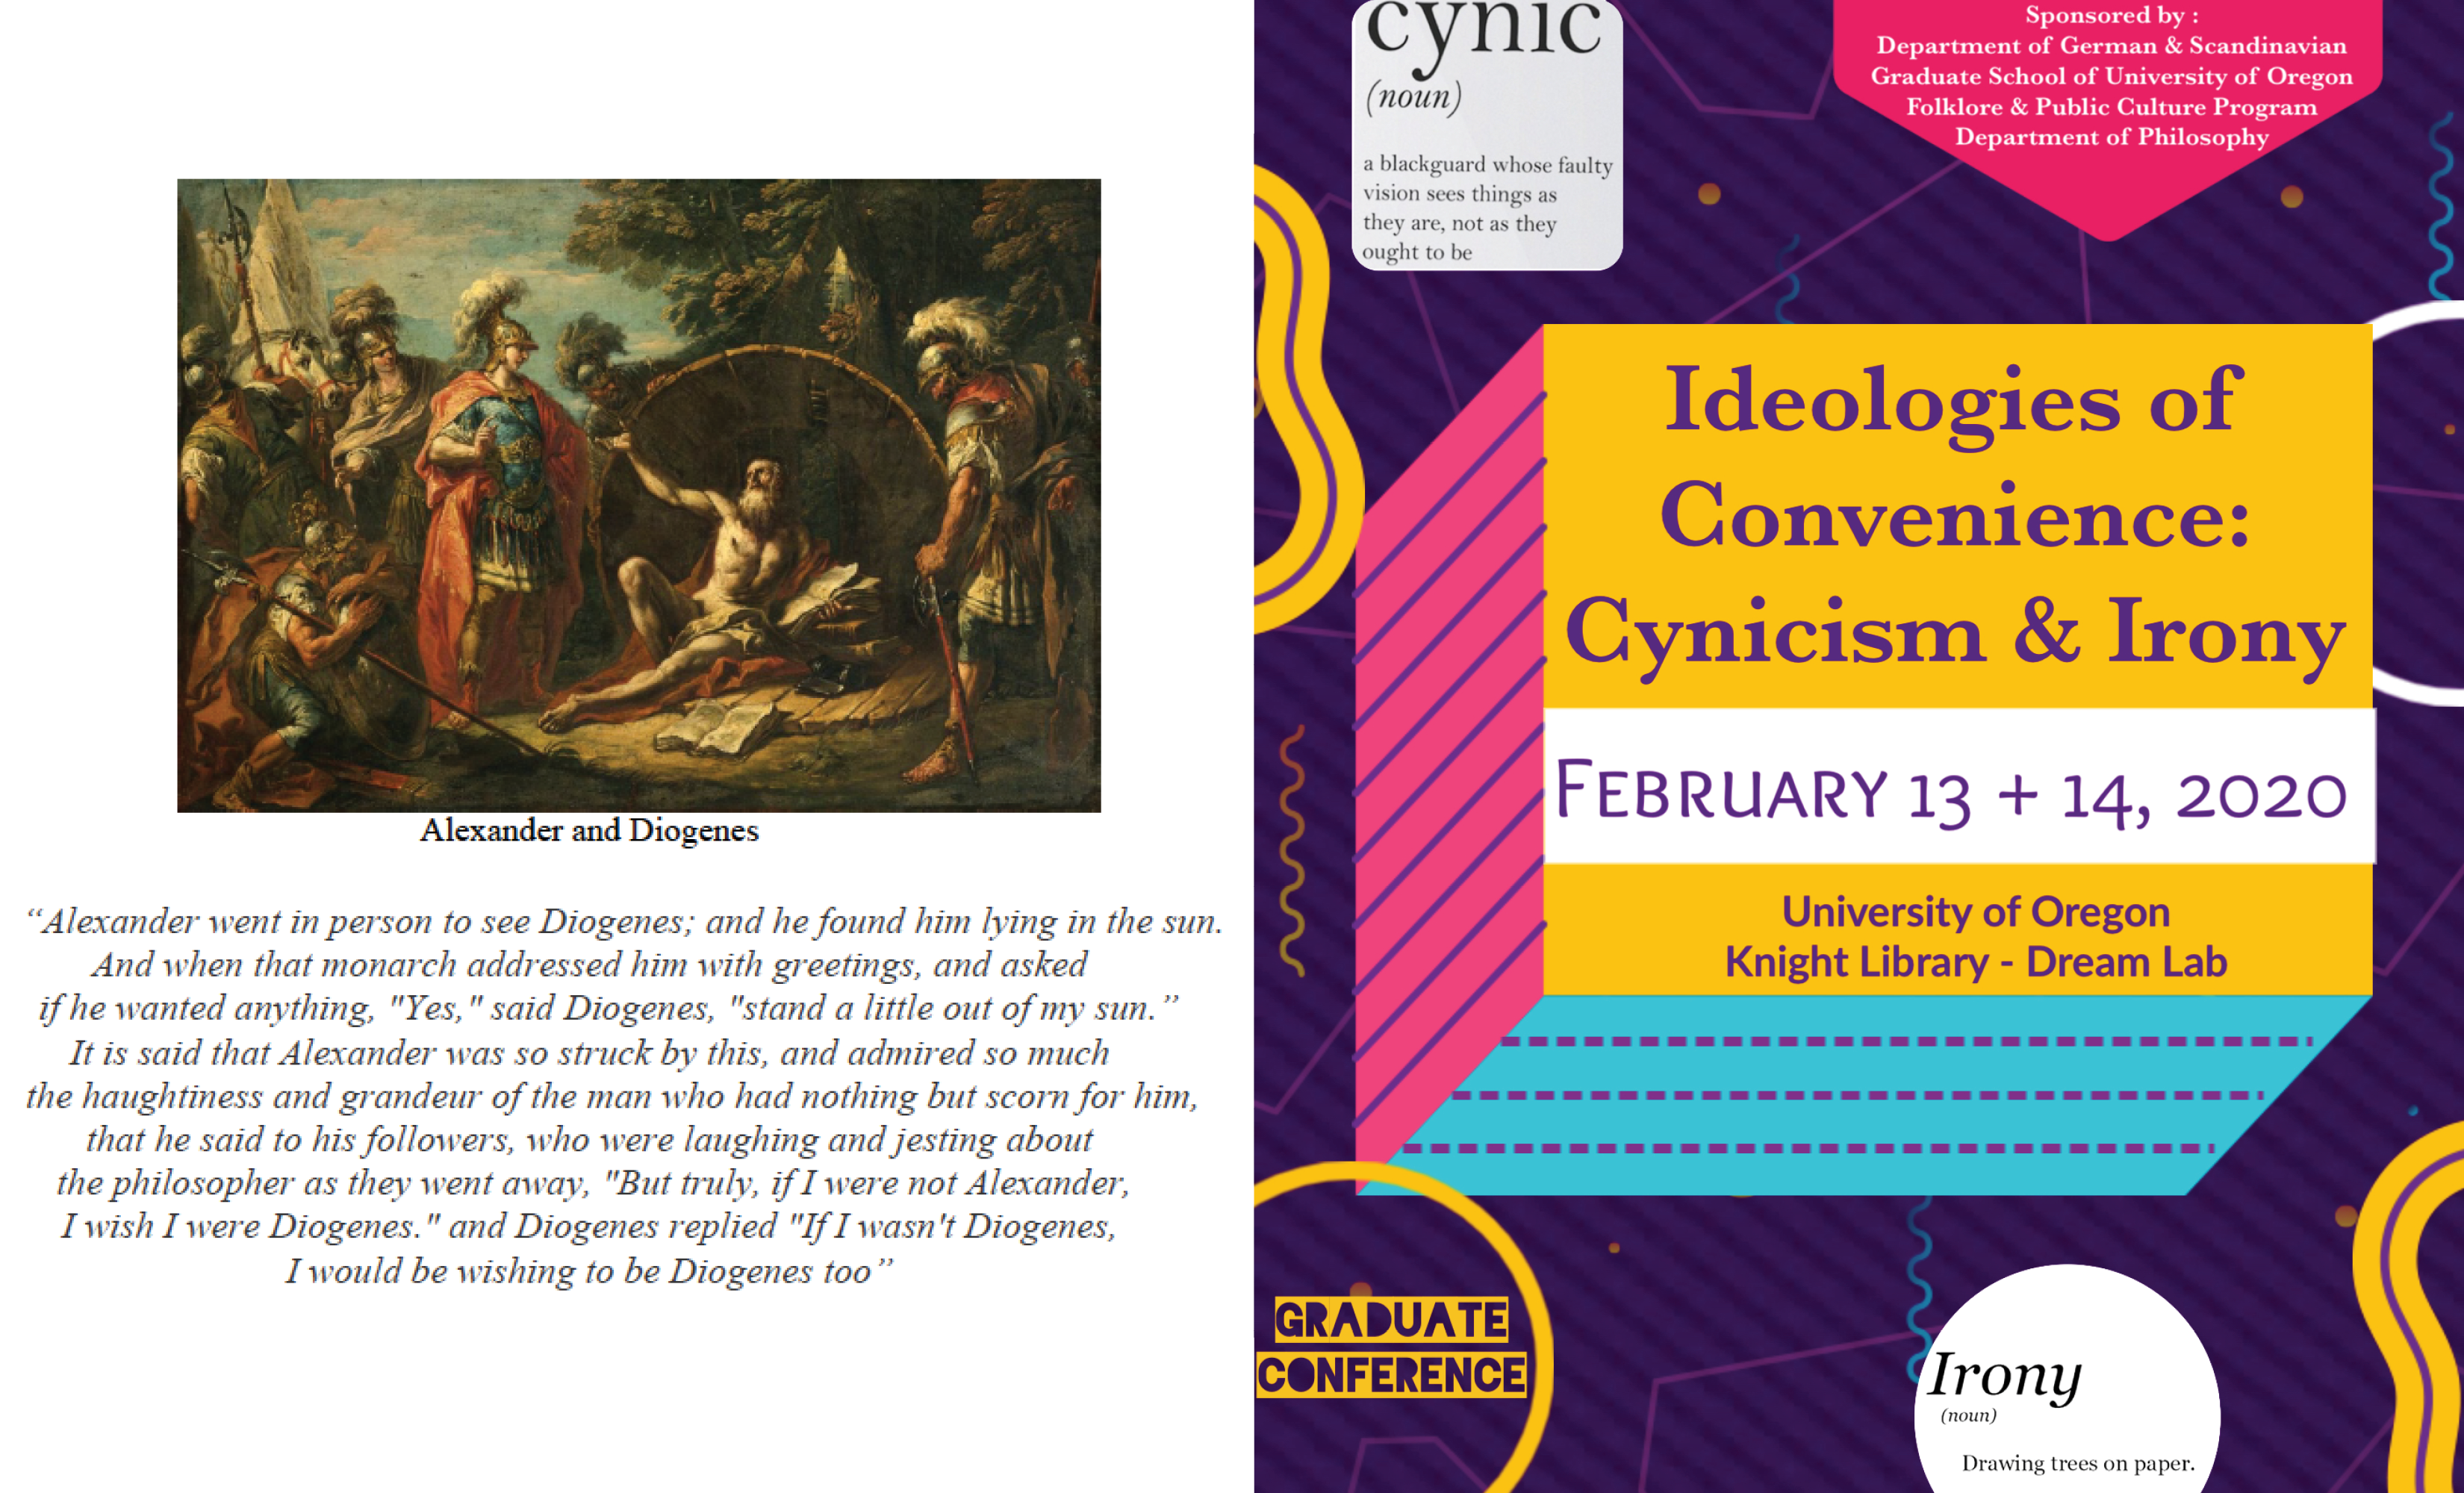 Graduate Conference Flyer Feb 13th and 4th Cynicism